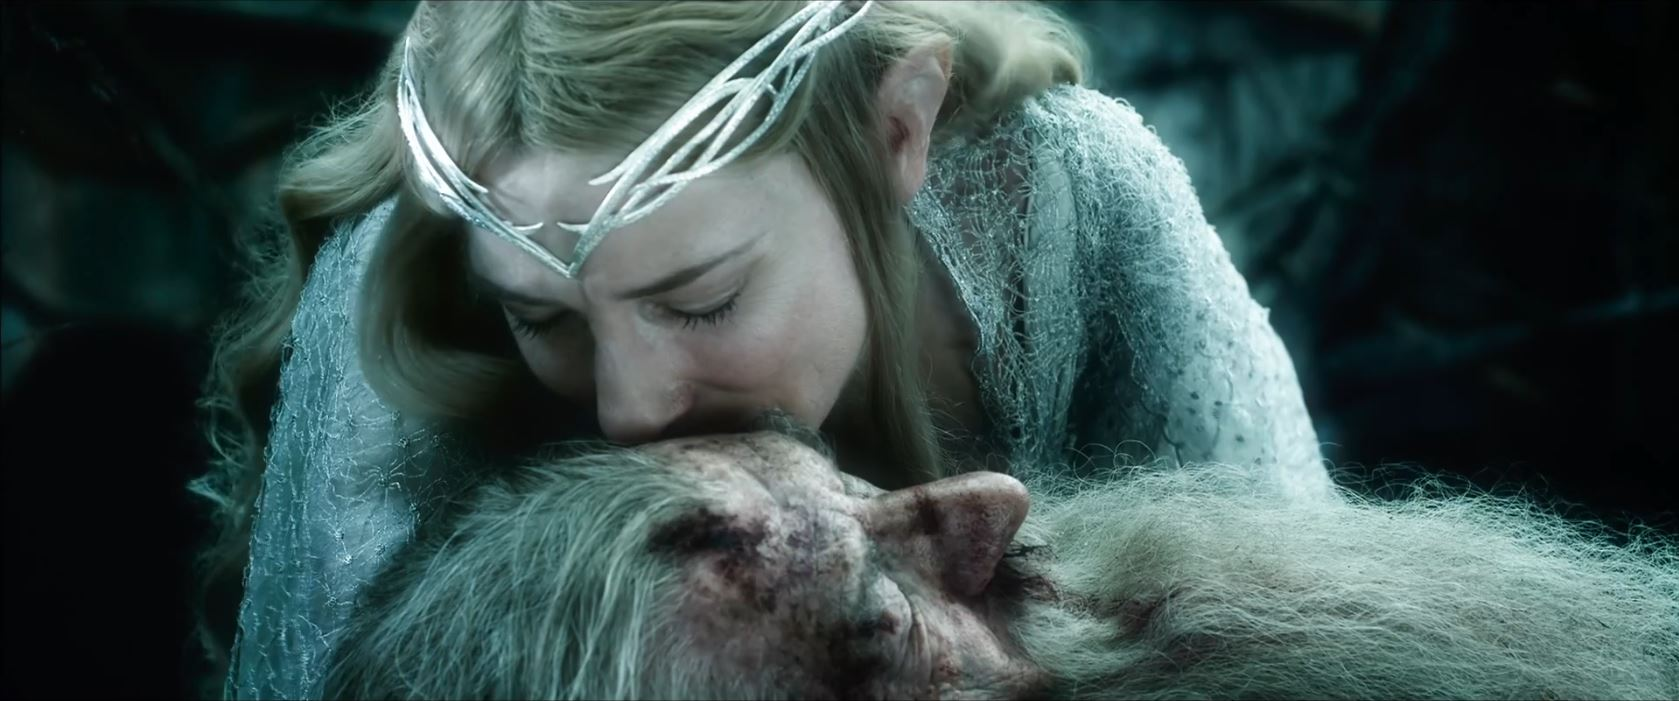 The Hobbit The Battle of the Five Armies Trailer - Cate Blanchett as Galadriel kissing Gandalf